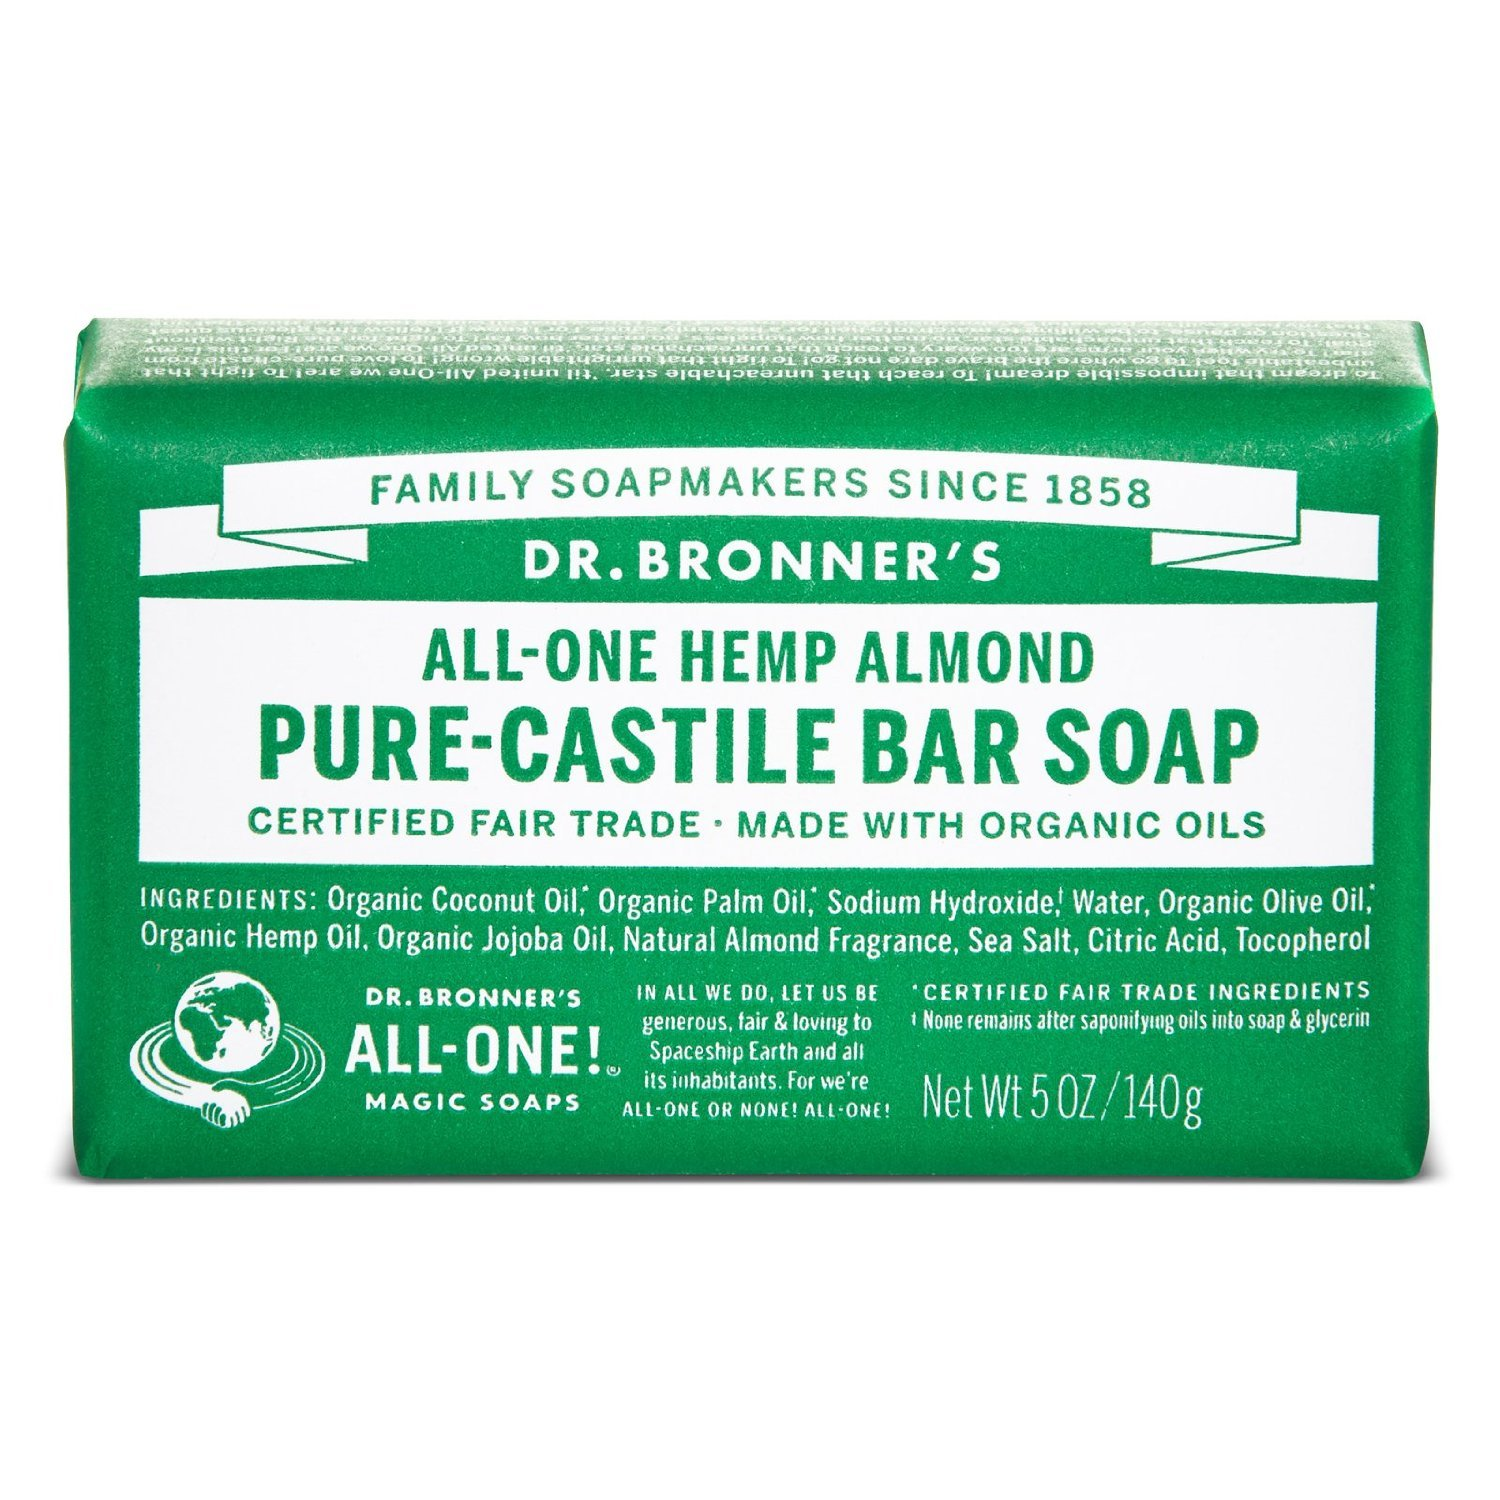 Dr Bronners Magic Soap All One Obal05 5 Oz Almond Dr. Bronner'S Bar Soap by Dr. Bronner's